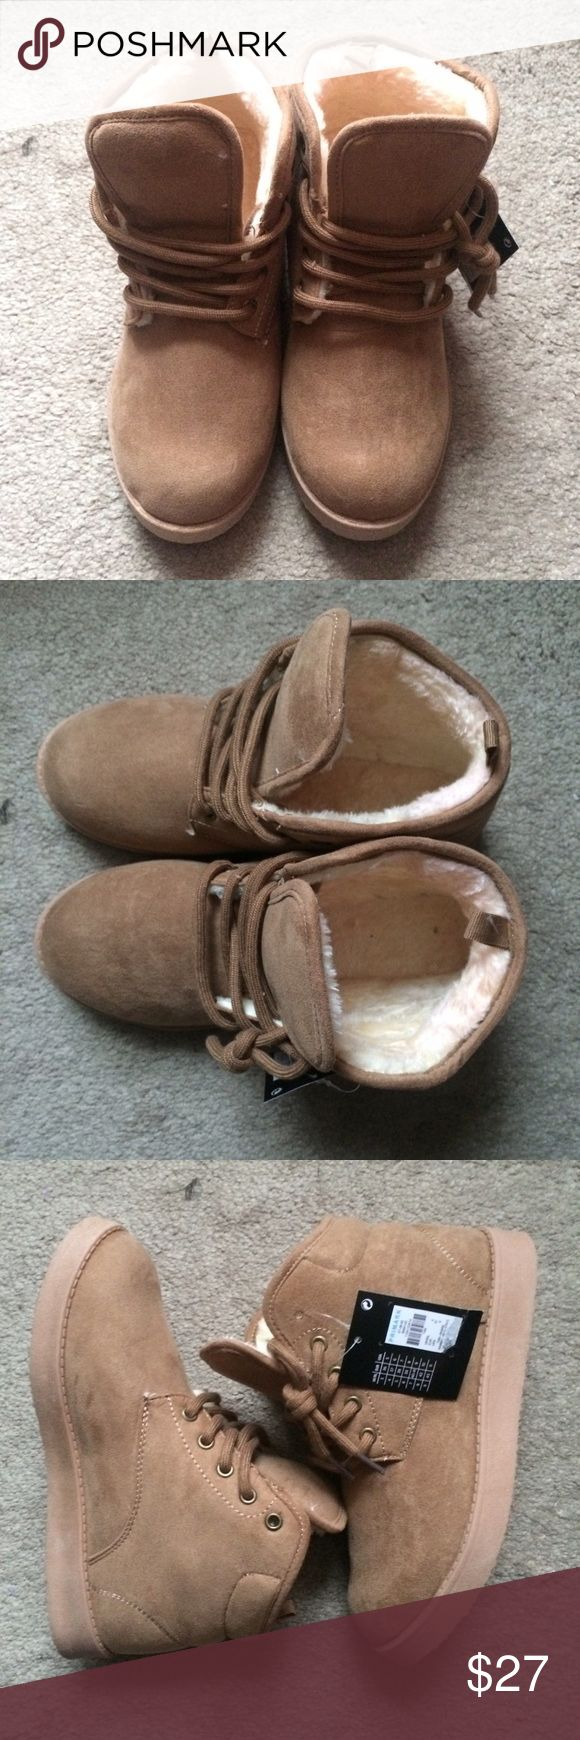 NWT Tan Booties similar to uggs Neumels It's very comfy and extra cute! Any pair bought before ***Sunday December 11, will ship Monday!*** any shoe purchased after December item will ship on Thursdays due to me getting the shoes! Primark Shoes Ankle Boots & Booties